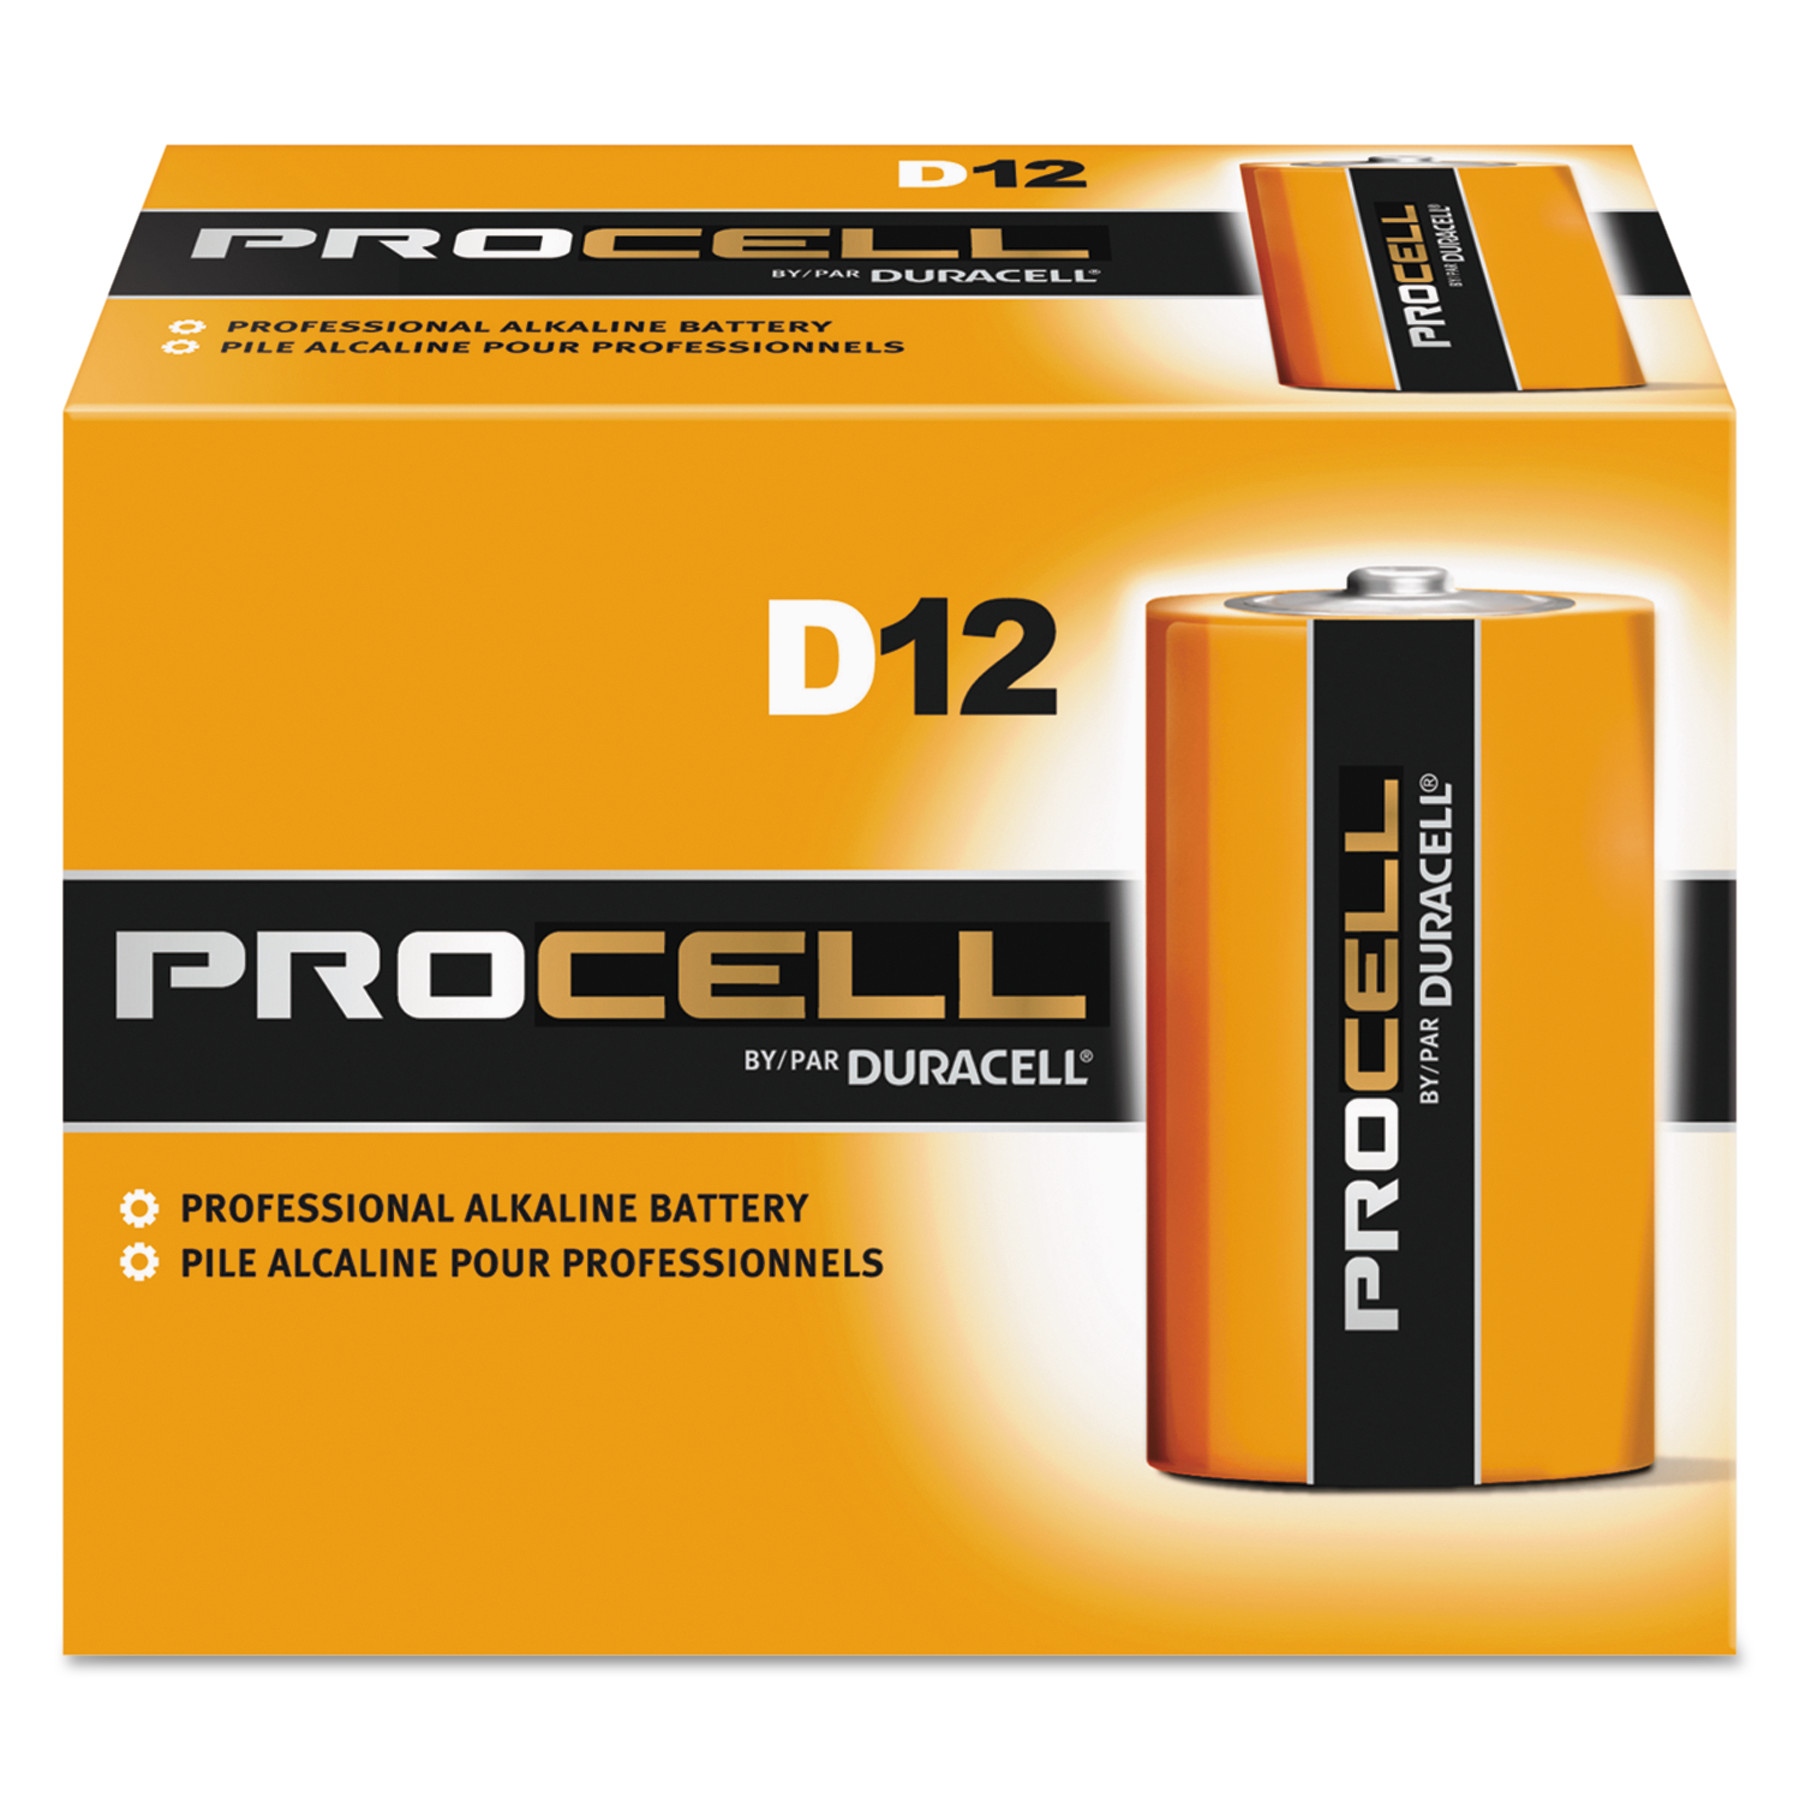 Best D Batteries - Duracell Procell Alkaline D Batteries 12/Box Review